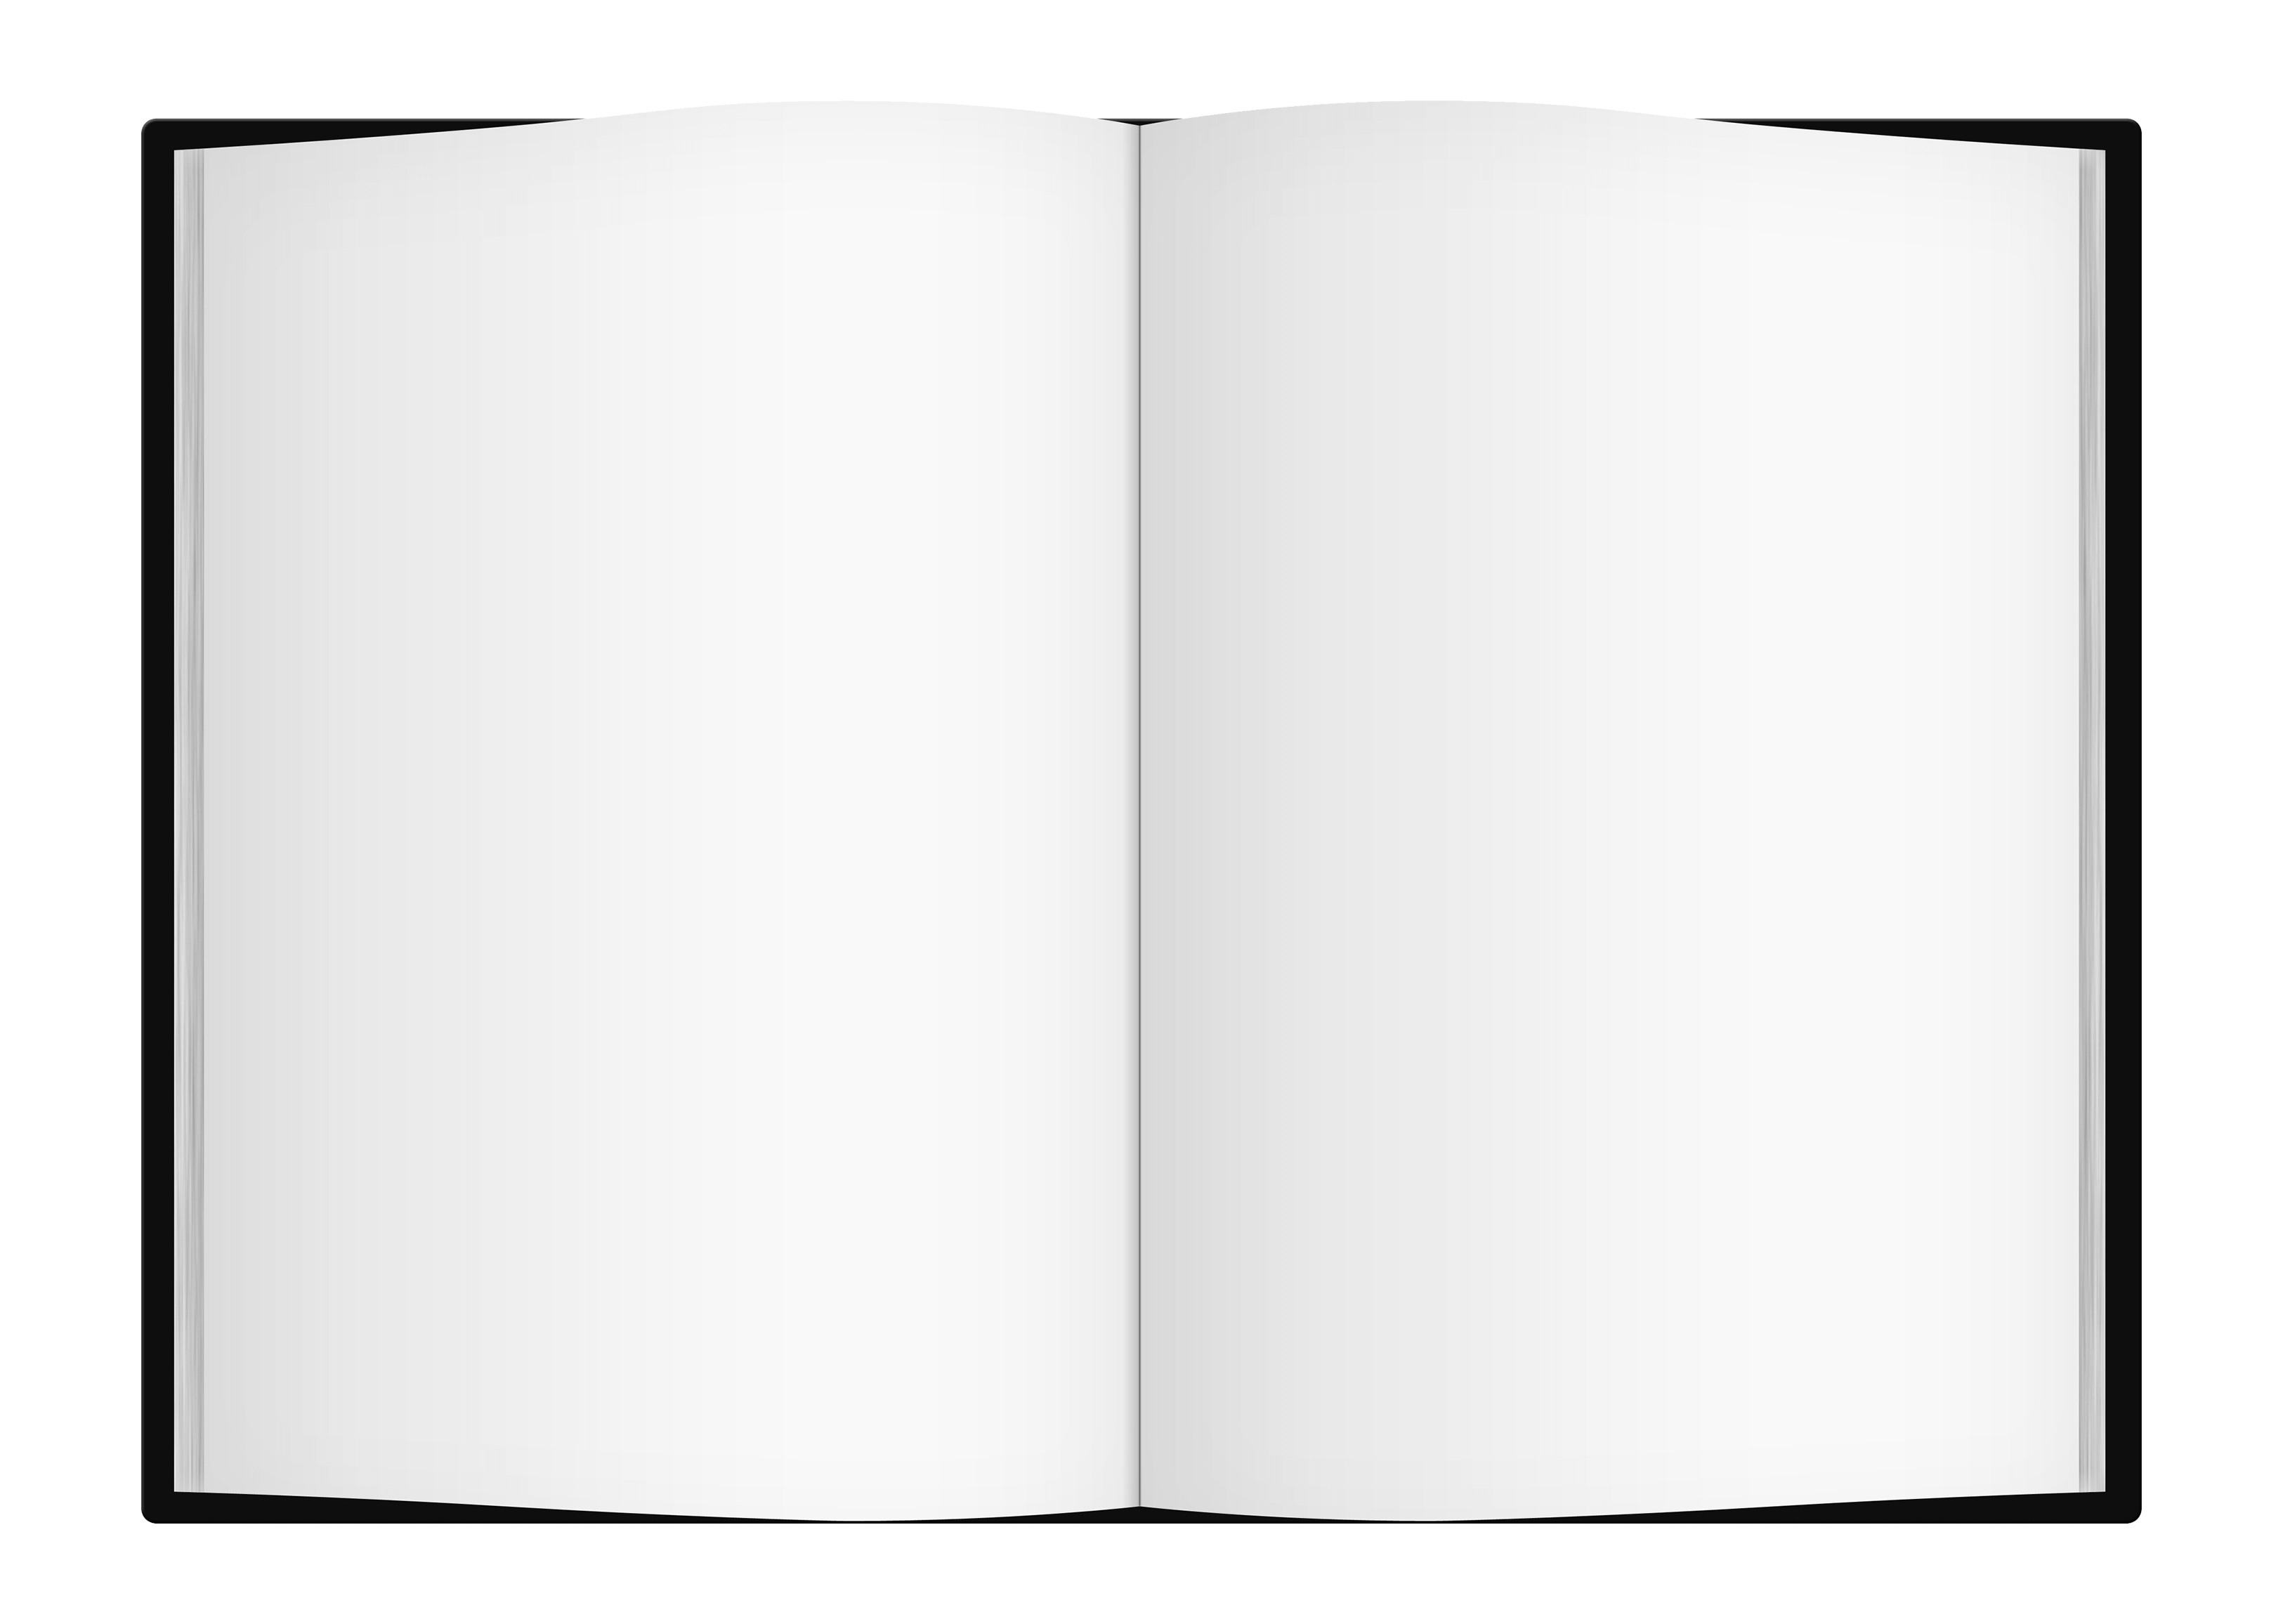 Open book png. Image